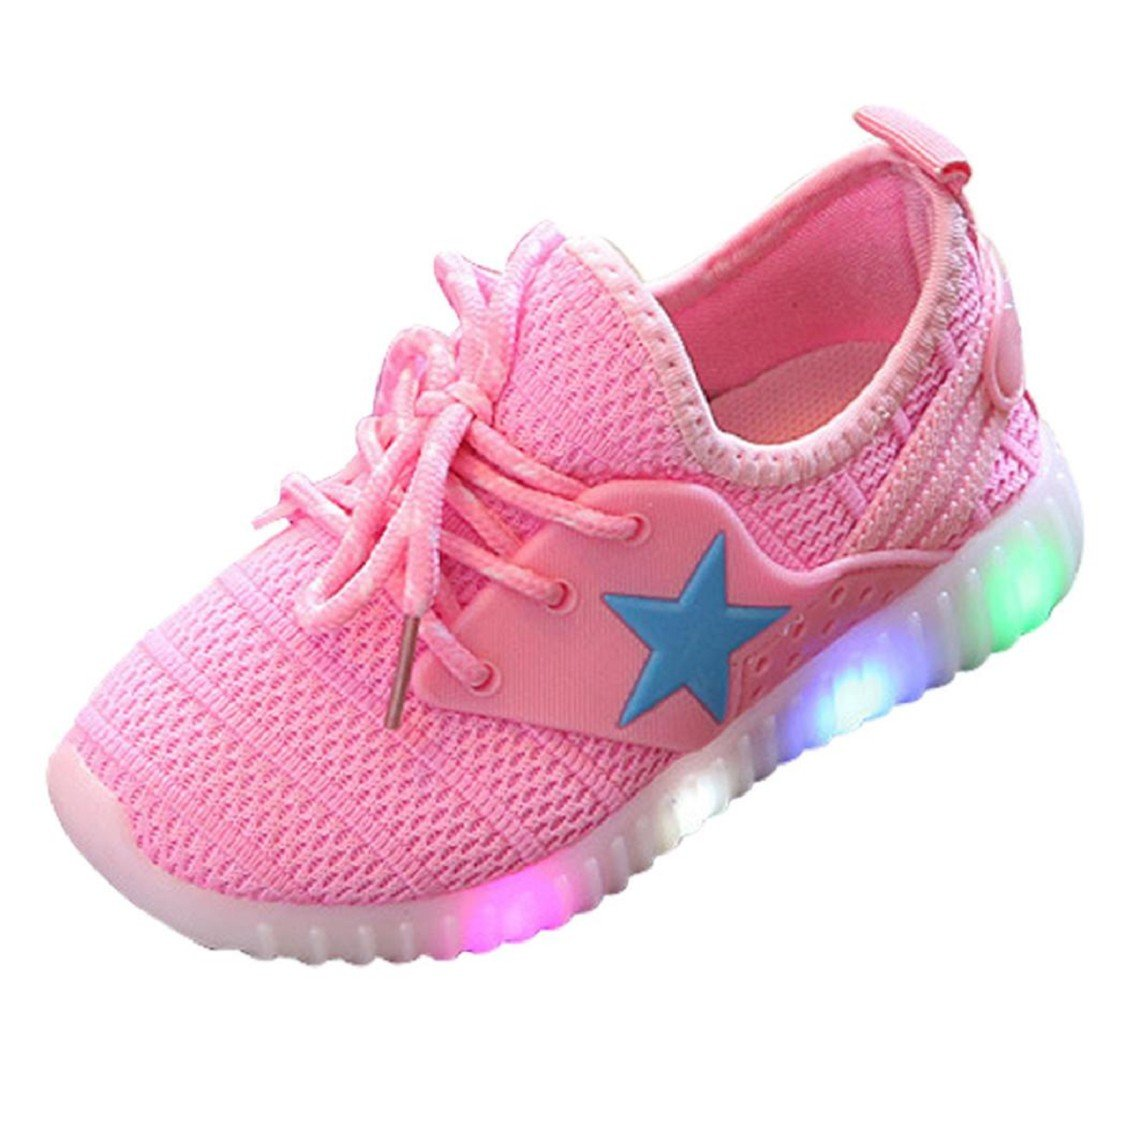 Naladoo Toddler Baby Fashion Sneakers Star Luminous Child Casual colorful Light Shoes (3.5 Years Old, Pink)